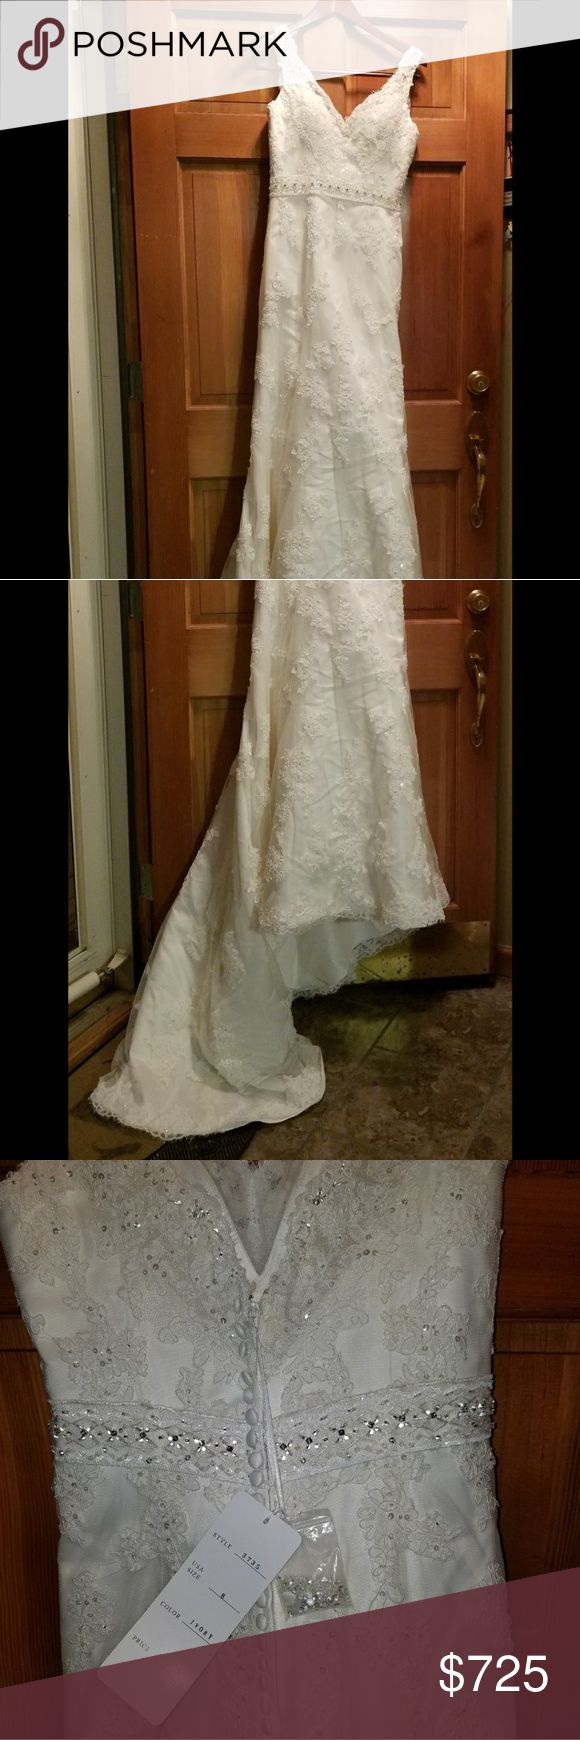 Wedding dress-Never worn Never worn Sincerity Bridal wedding dress.  Style number 3735. No stains,  rips etc.  Brand new!  Size 8. Paid over $1,000 for it.  PM for details please. Sincerity Bridal Dresses Wedding